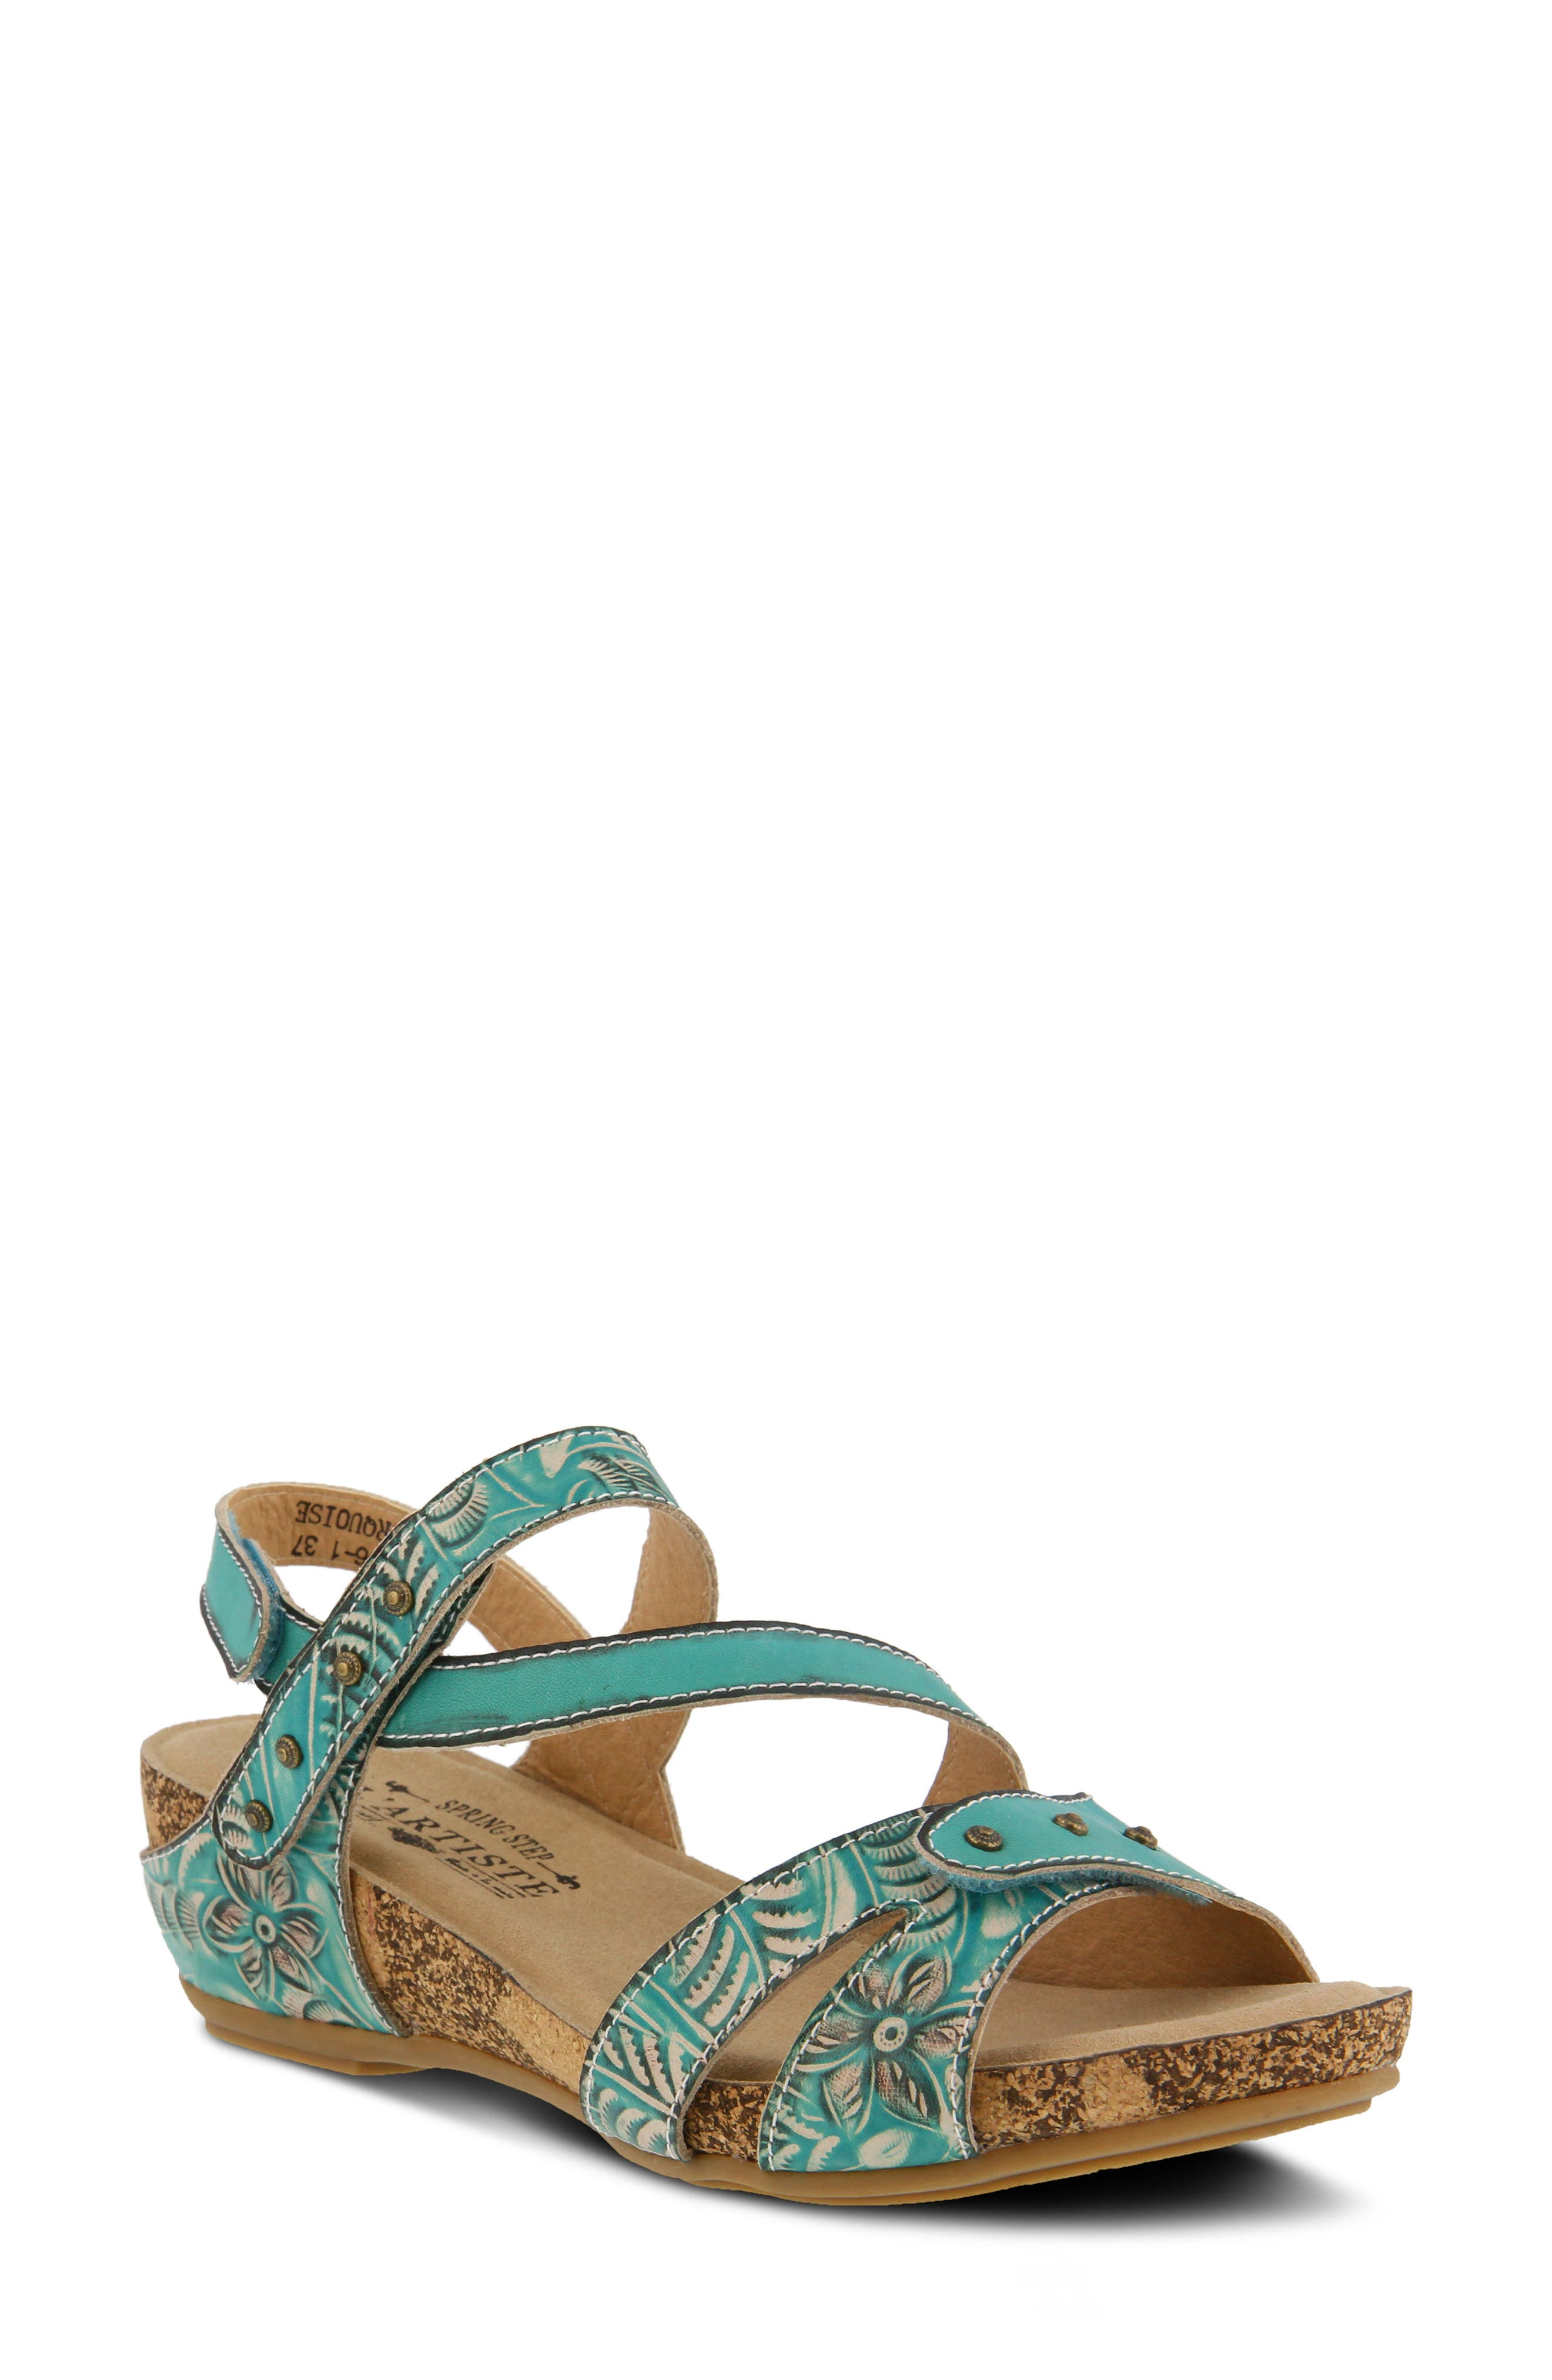 Quilana Wedge Sandal